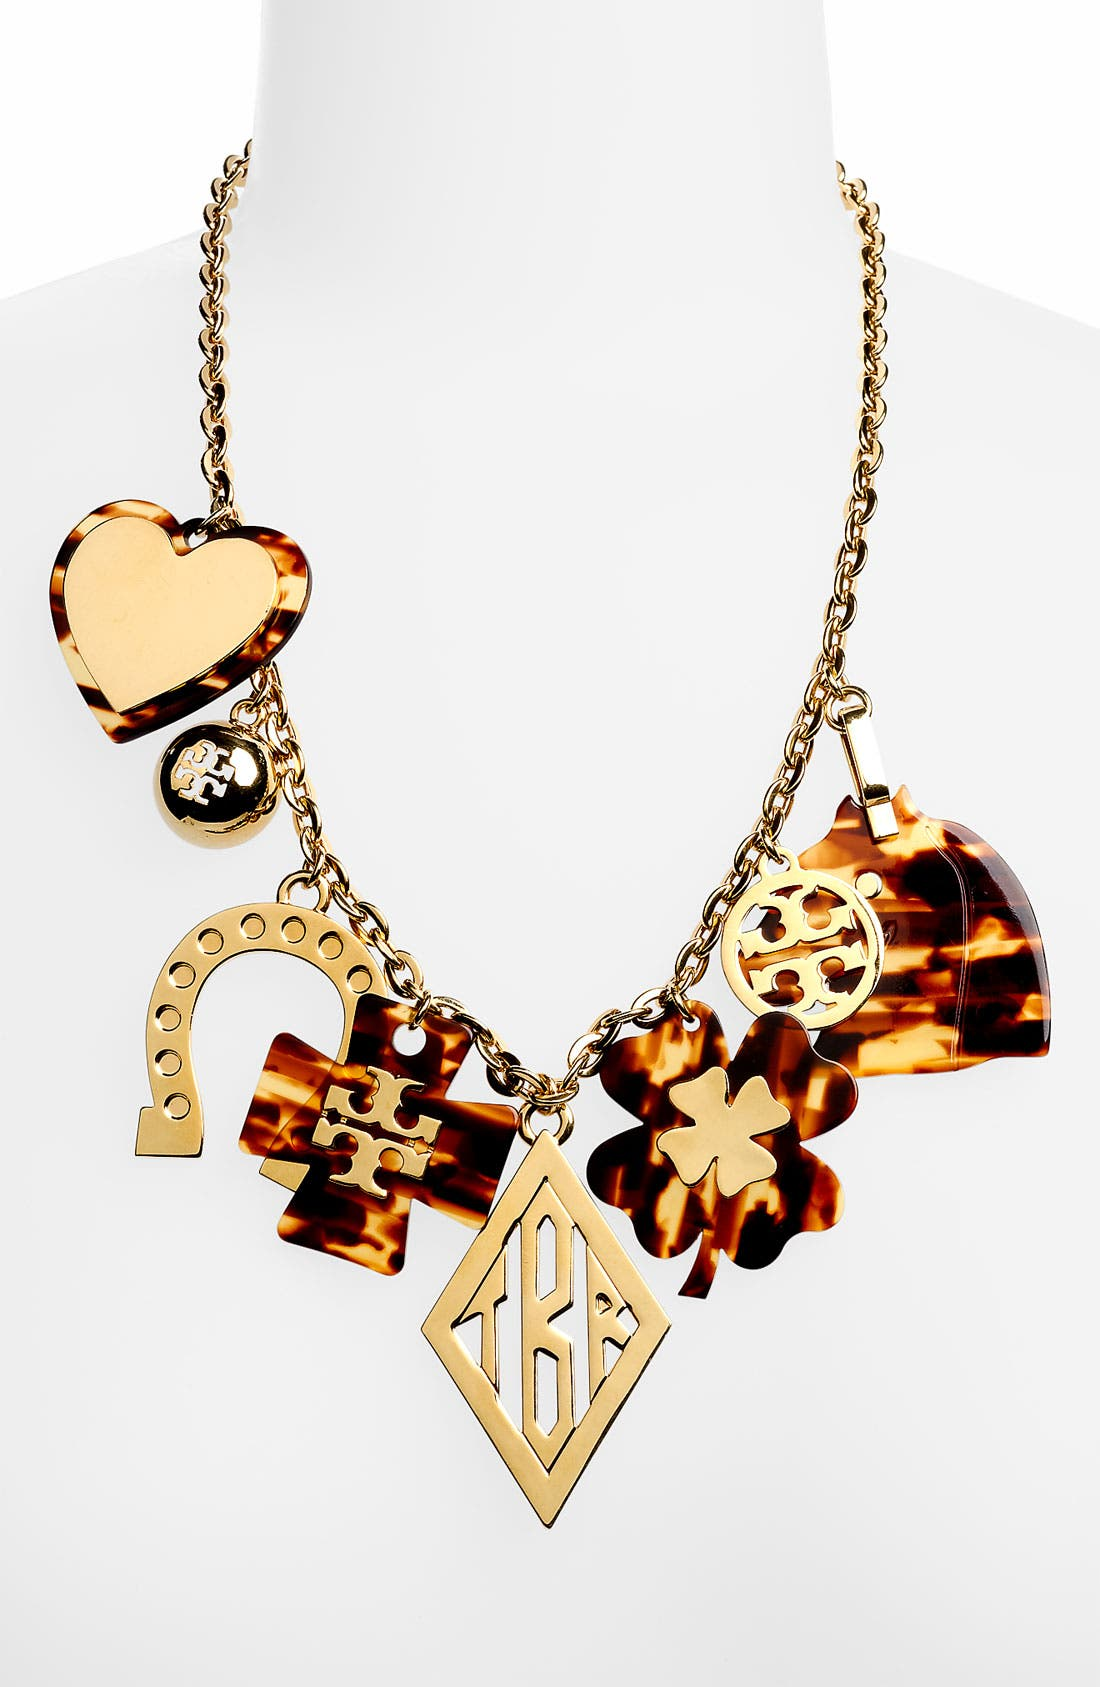 Main Image - Tory Burch 'Tilsim' Equestrian Charm Necklace